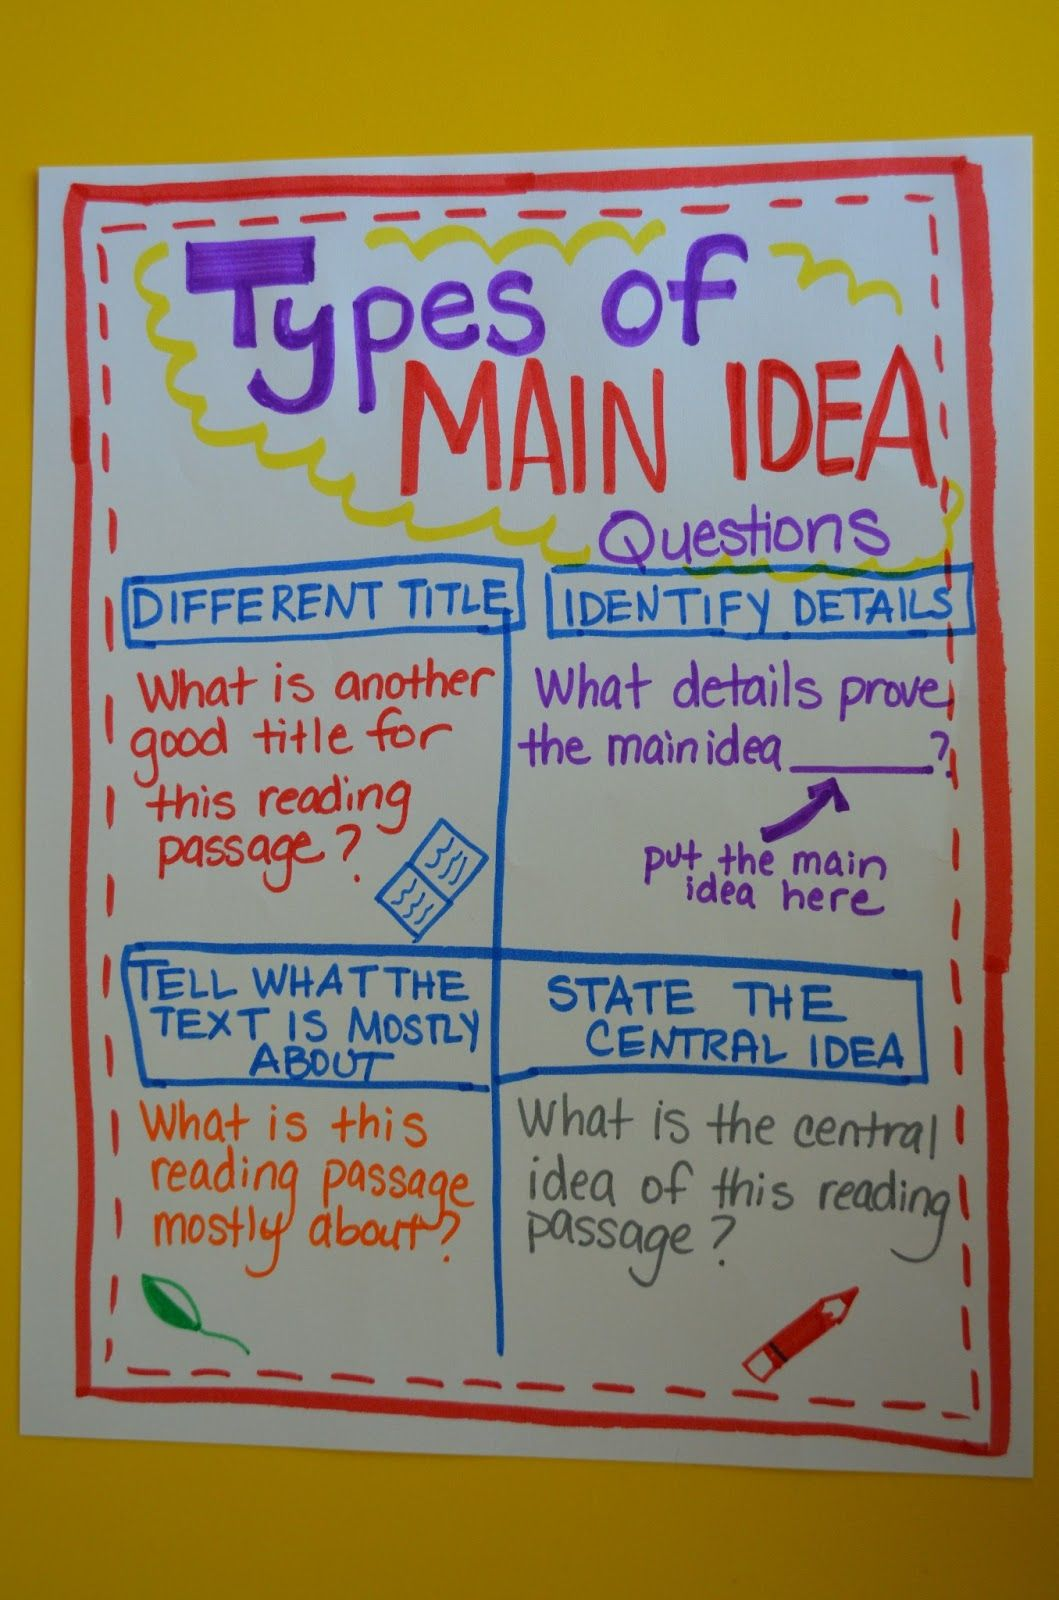 Literacy & Math Ideas: Different Types of Main Idea Questions ...